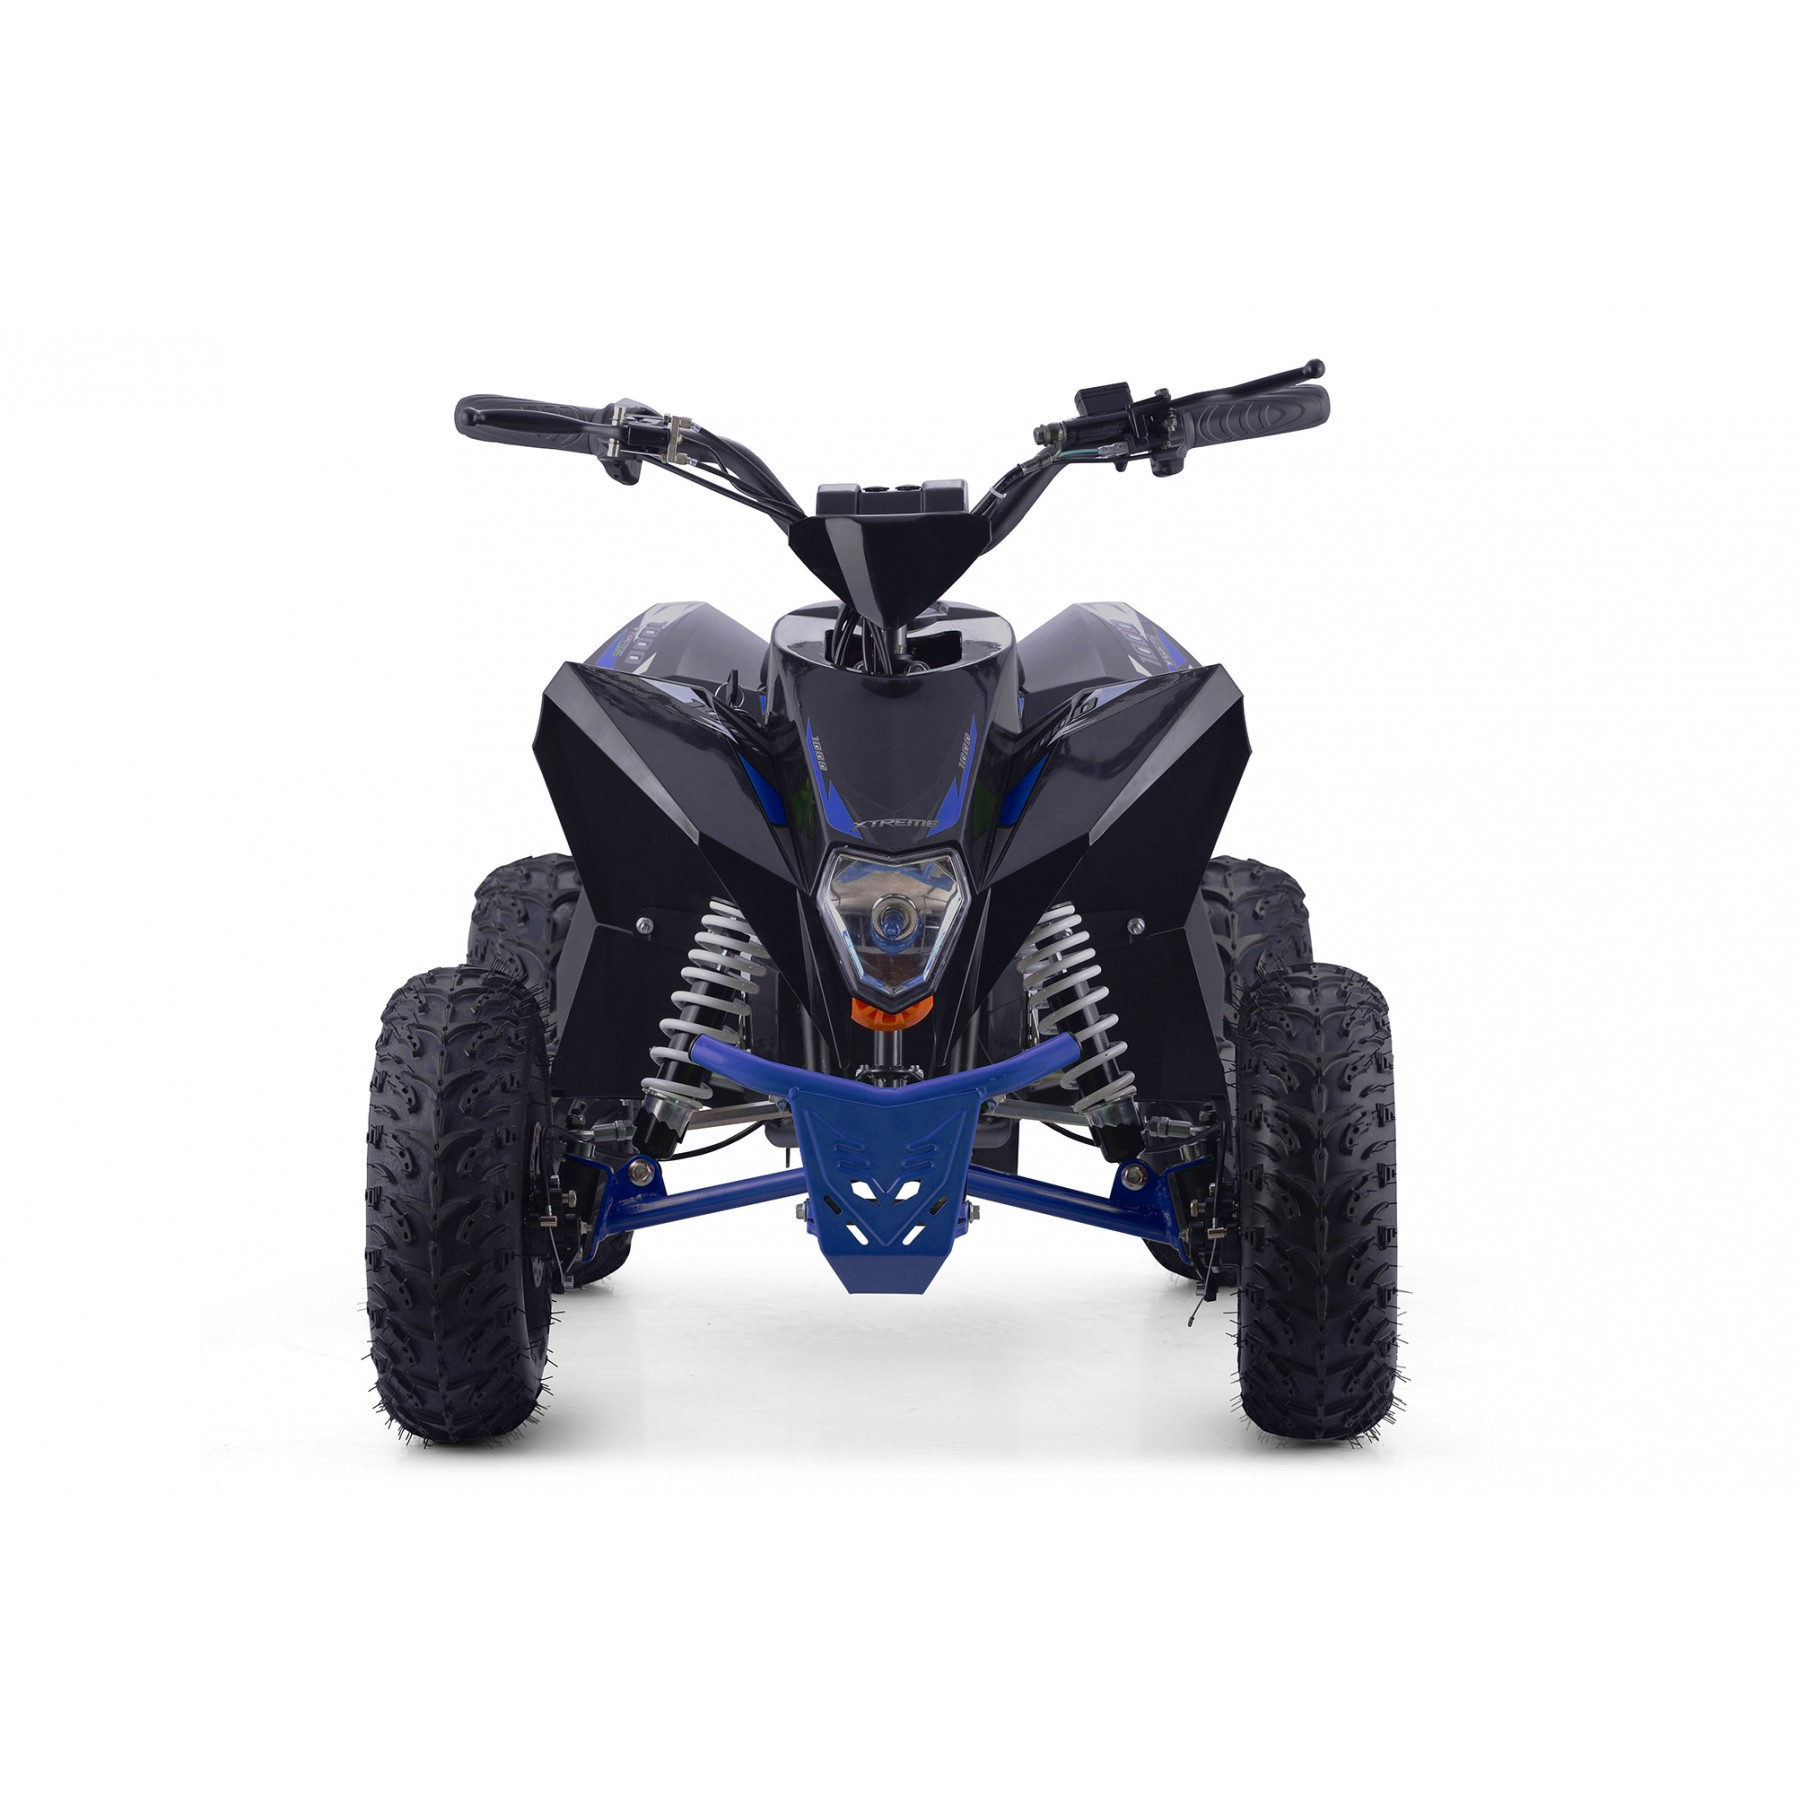 XTM RACING 1000w QUAD BIKE BLACK BLUE